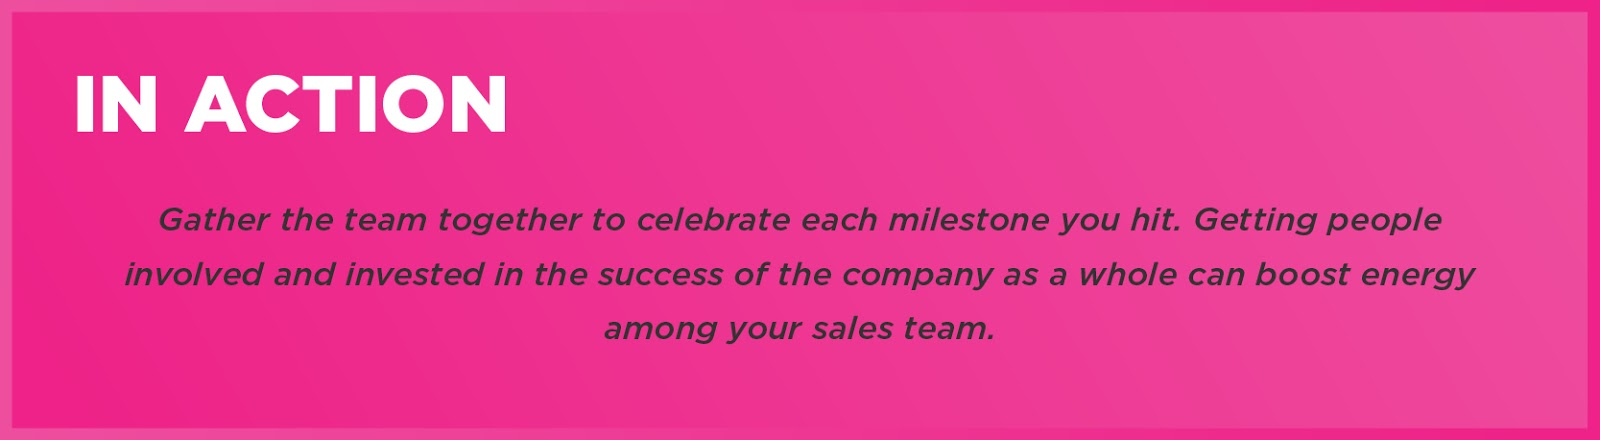 In Action: Gather the team together to celebrate each milestone you hit. Getting people involved and invested in the success of the company as a whole can boost energy among your sales team.